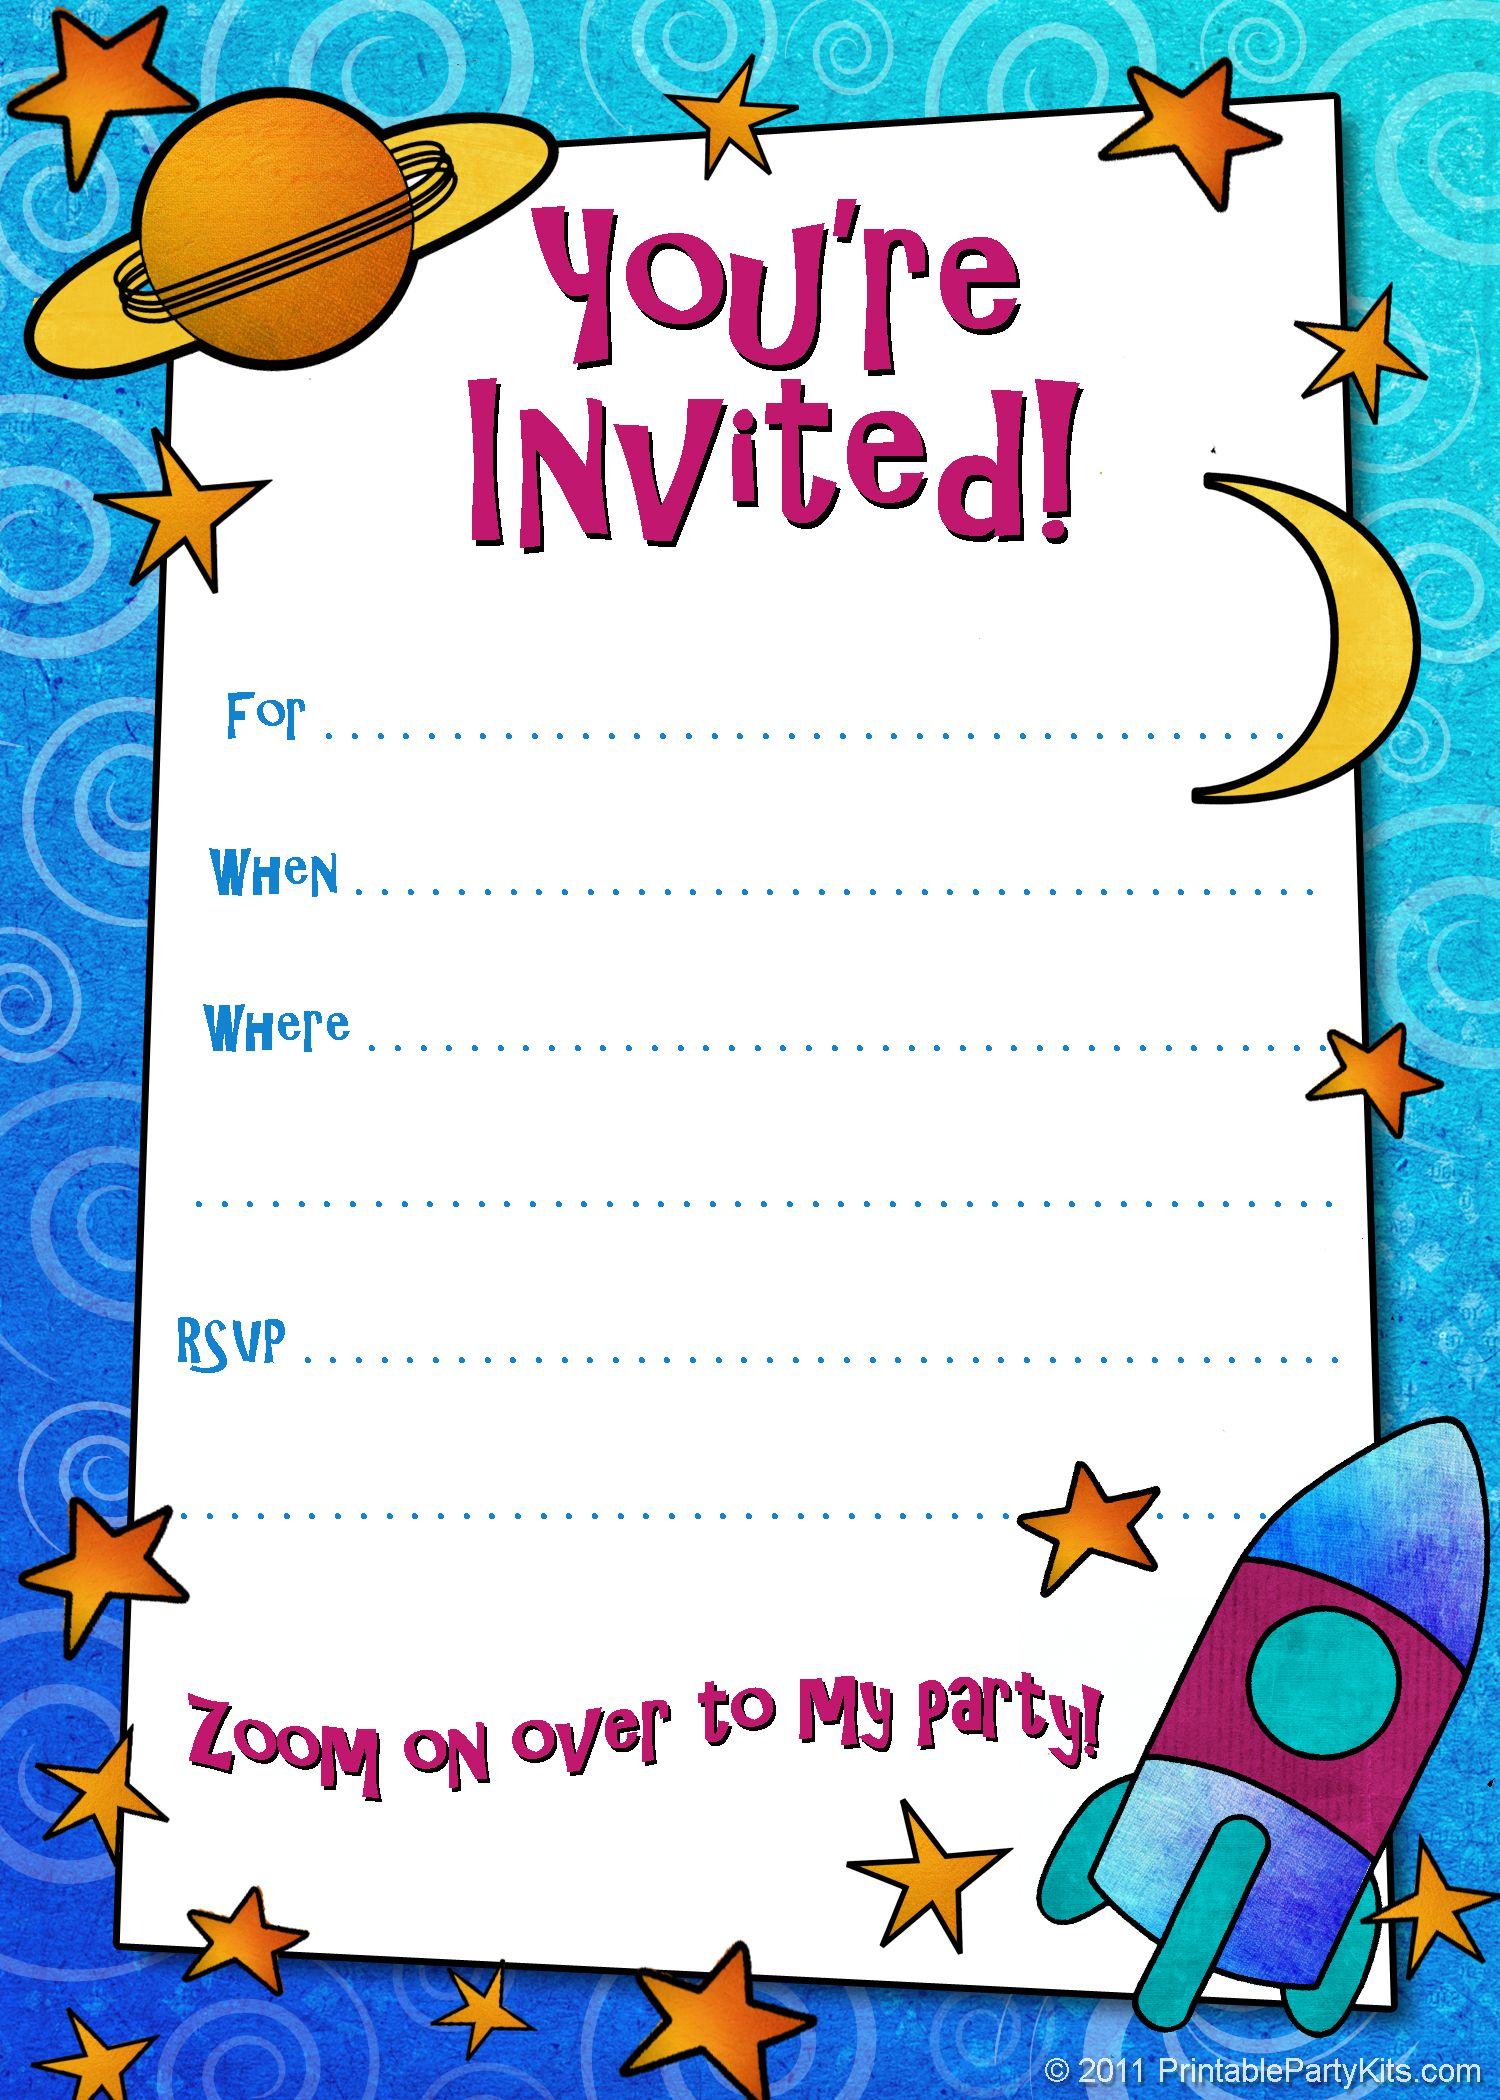 Free printable boys birthday party invitations birthday party httpwordplaybpageshubboys birthday invitations filmwisefo